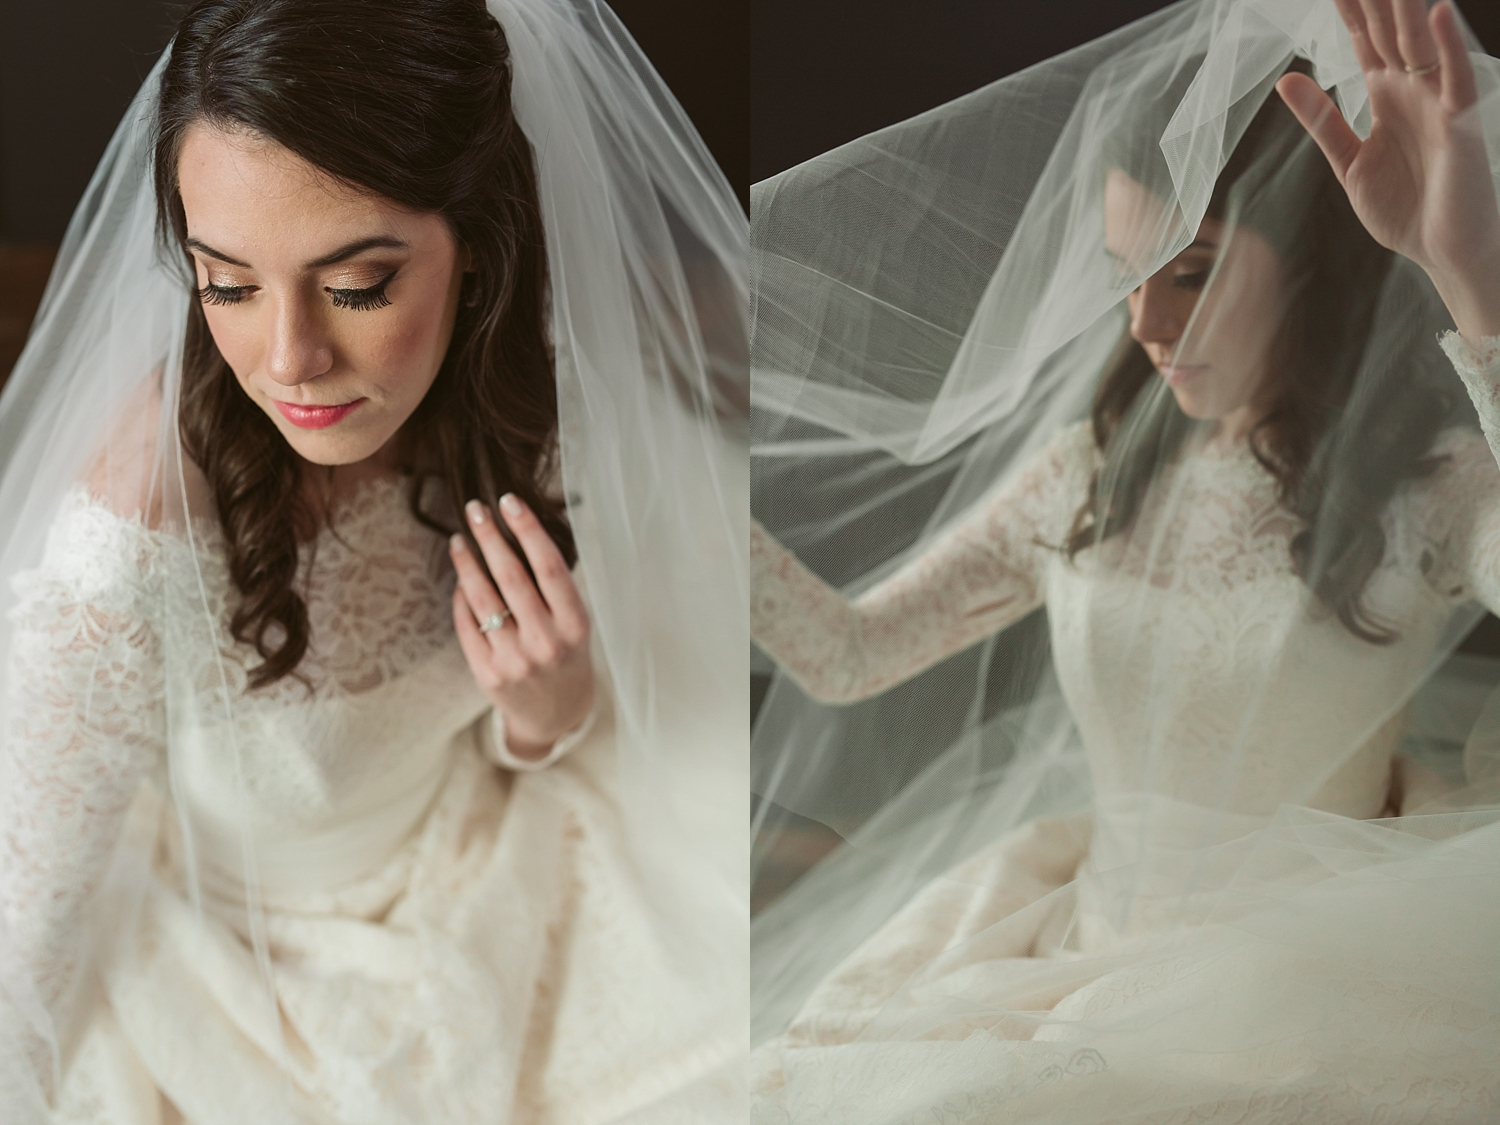 tampa_bridal_session_0020.jpg